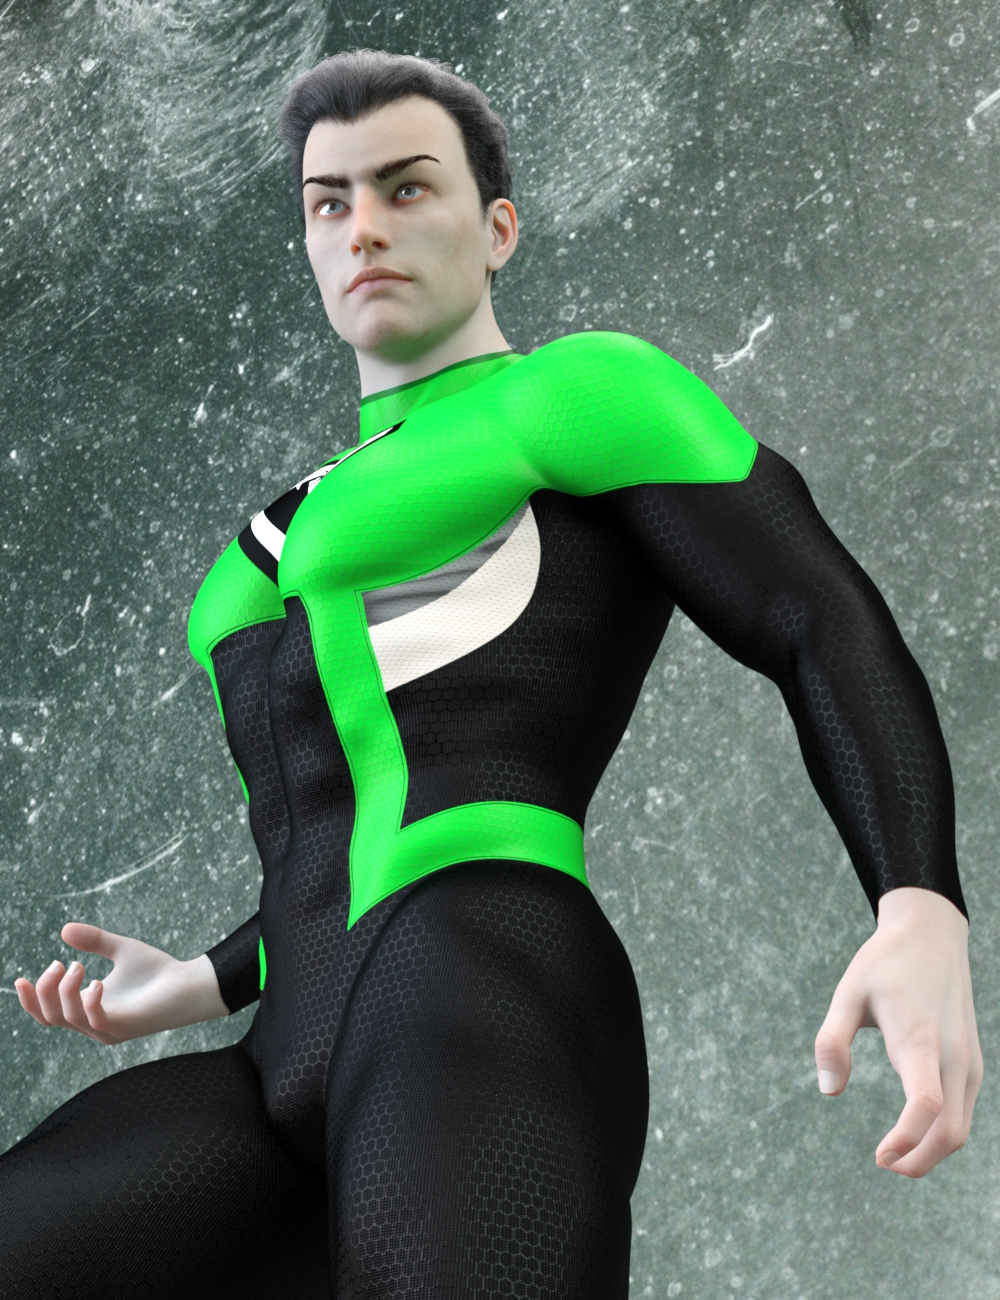 Jolnis The Space Diamond for Genesis 8.1 Male by: Dax Avalange , 3D Models by Daz 3D